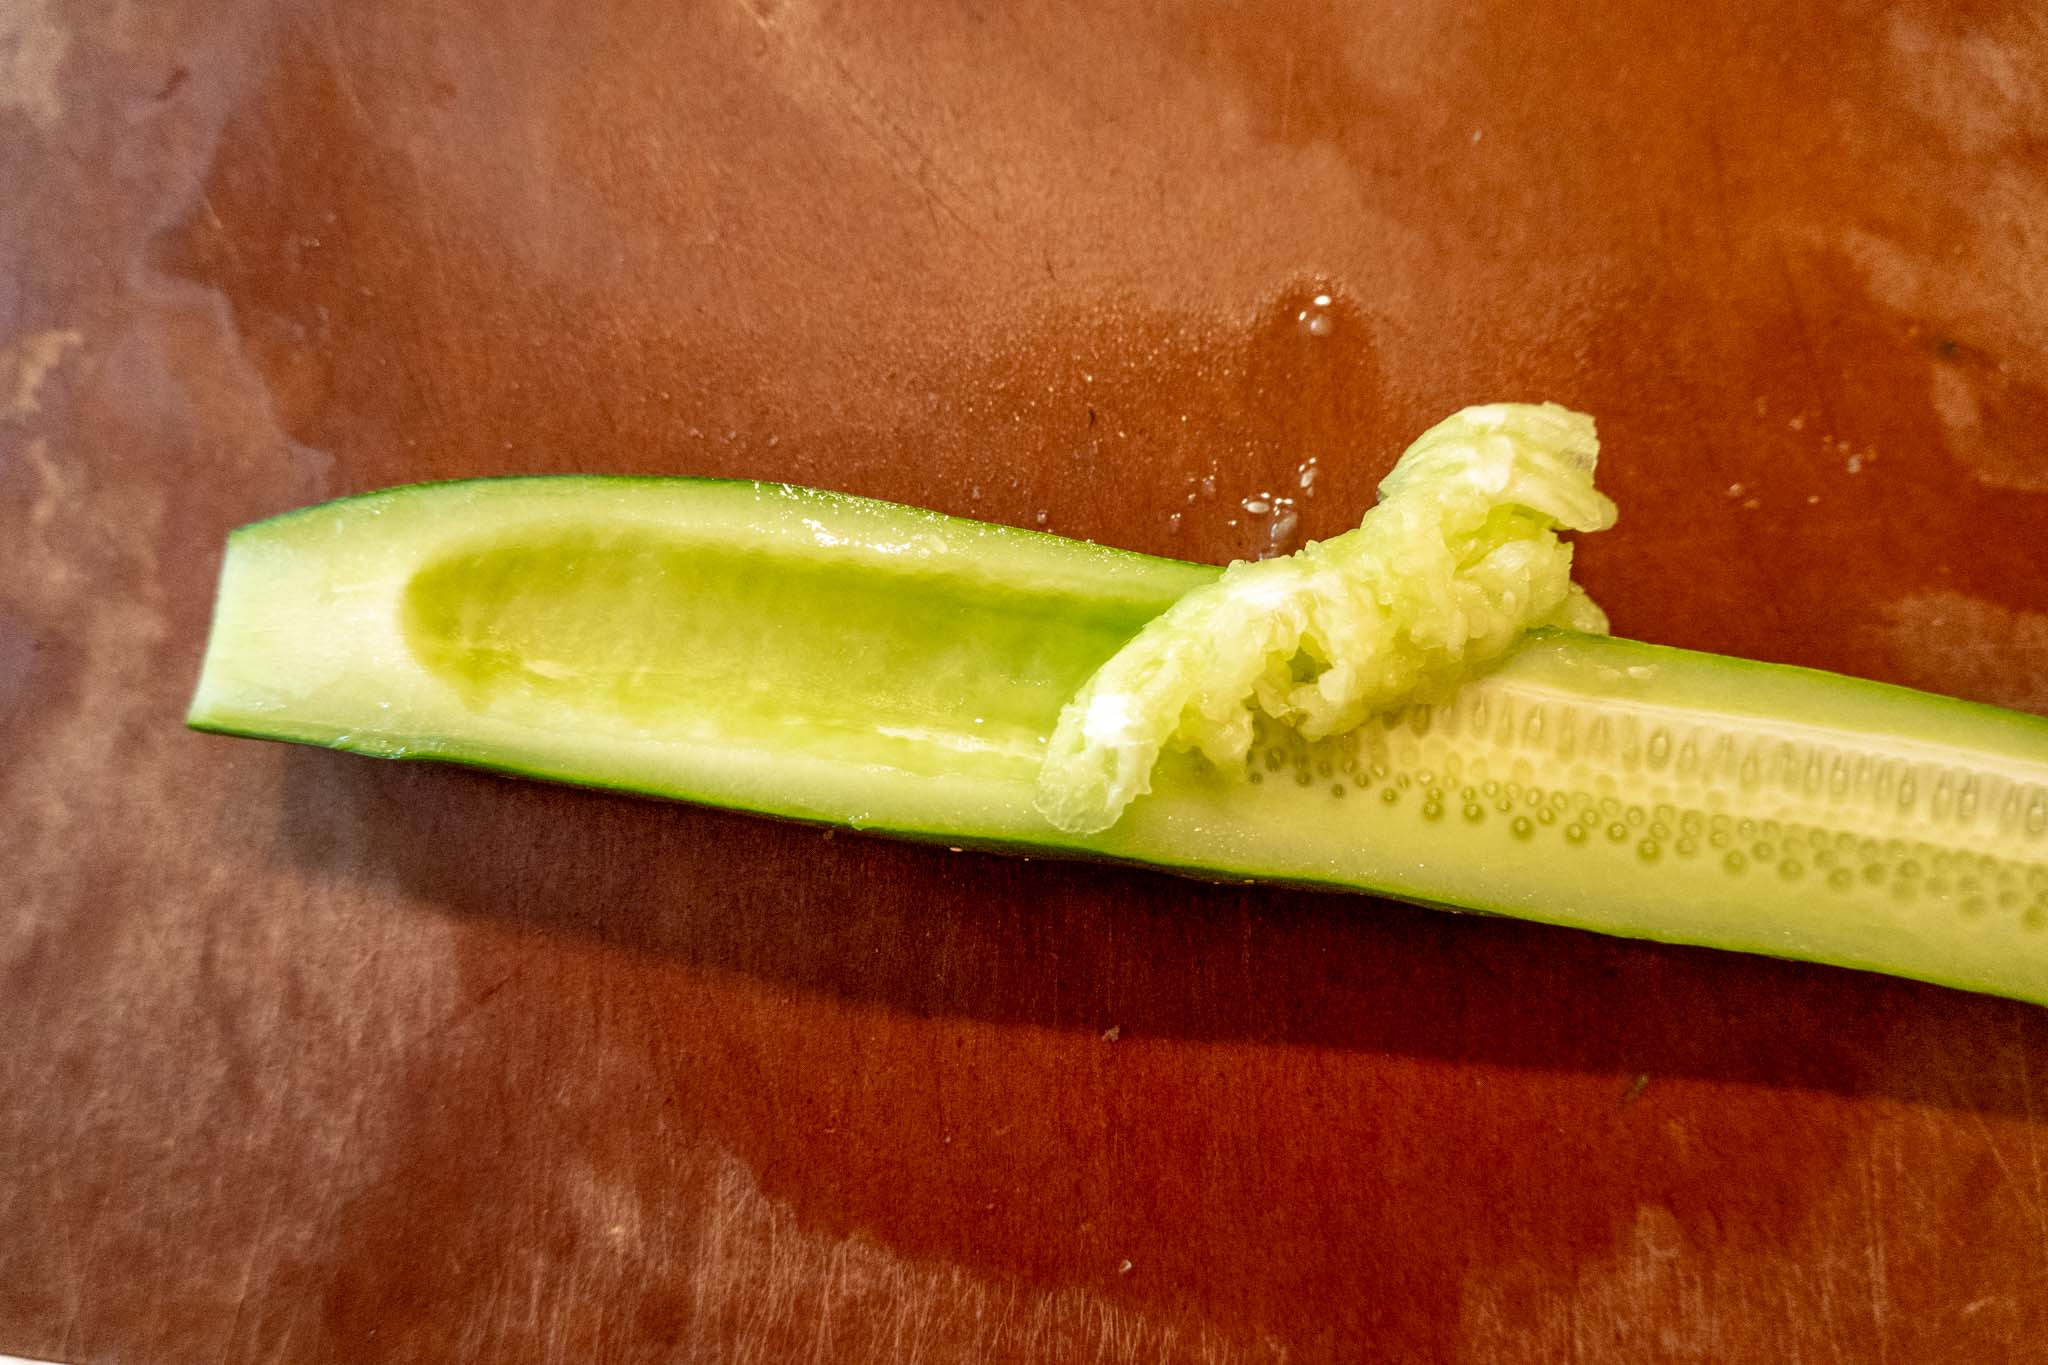 Seeds being removed from a cucumber